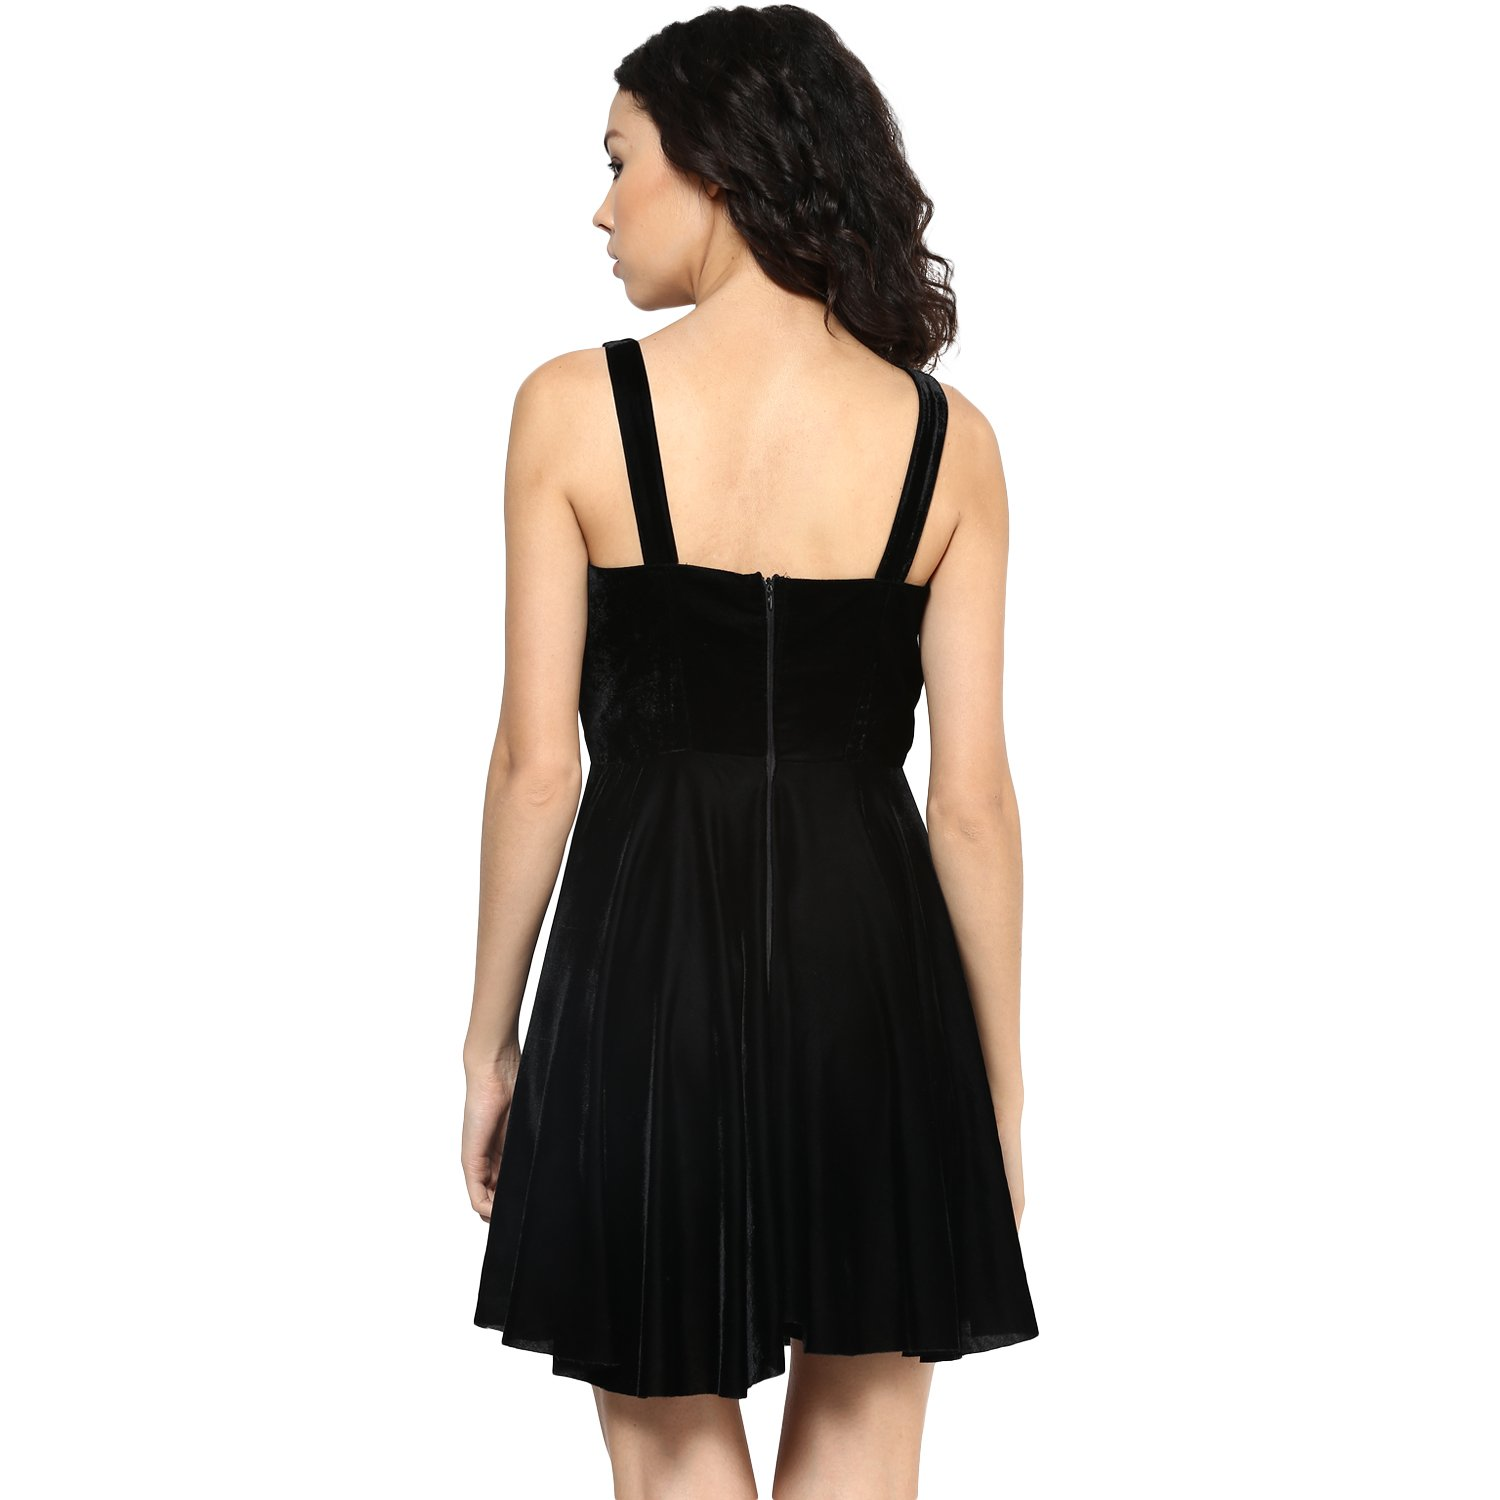 d57896a24da33 Roving Mode Women s Black Velvet Lace up A-Line Dress  Amazon.in  Clothing    Accessories